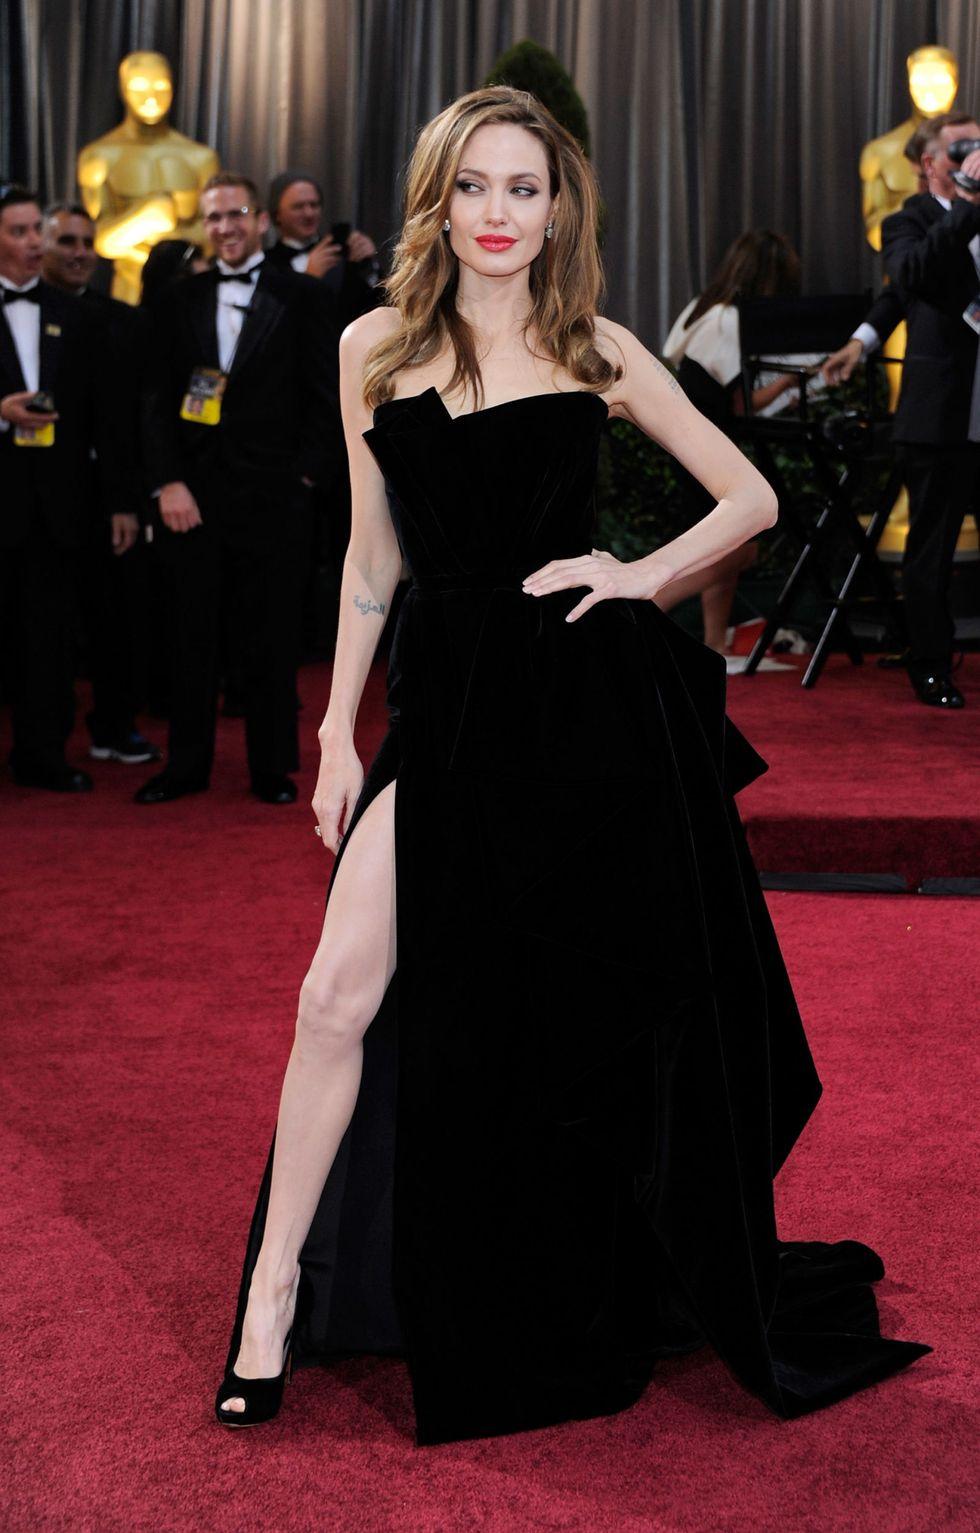 Angelina Jolie, 2012 The Versace look that sparked its own Twitter account (@AngiesRightLeg) was the talk of Tinsel Town in 2012. Many saw it as a return to her cheeky younger red carpet image.